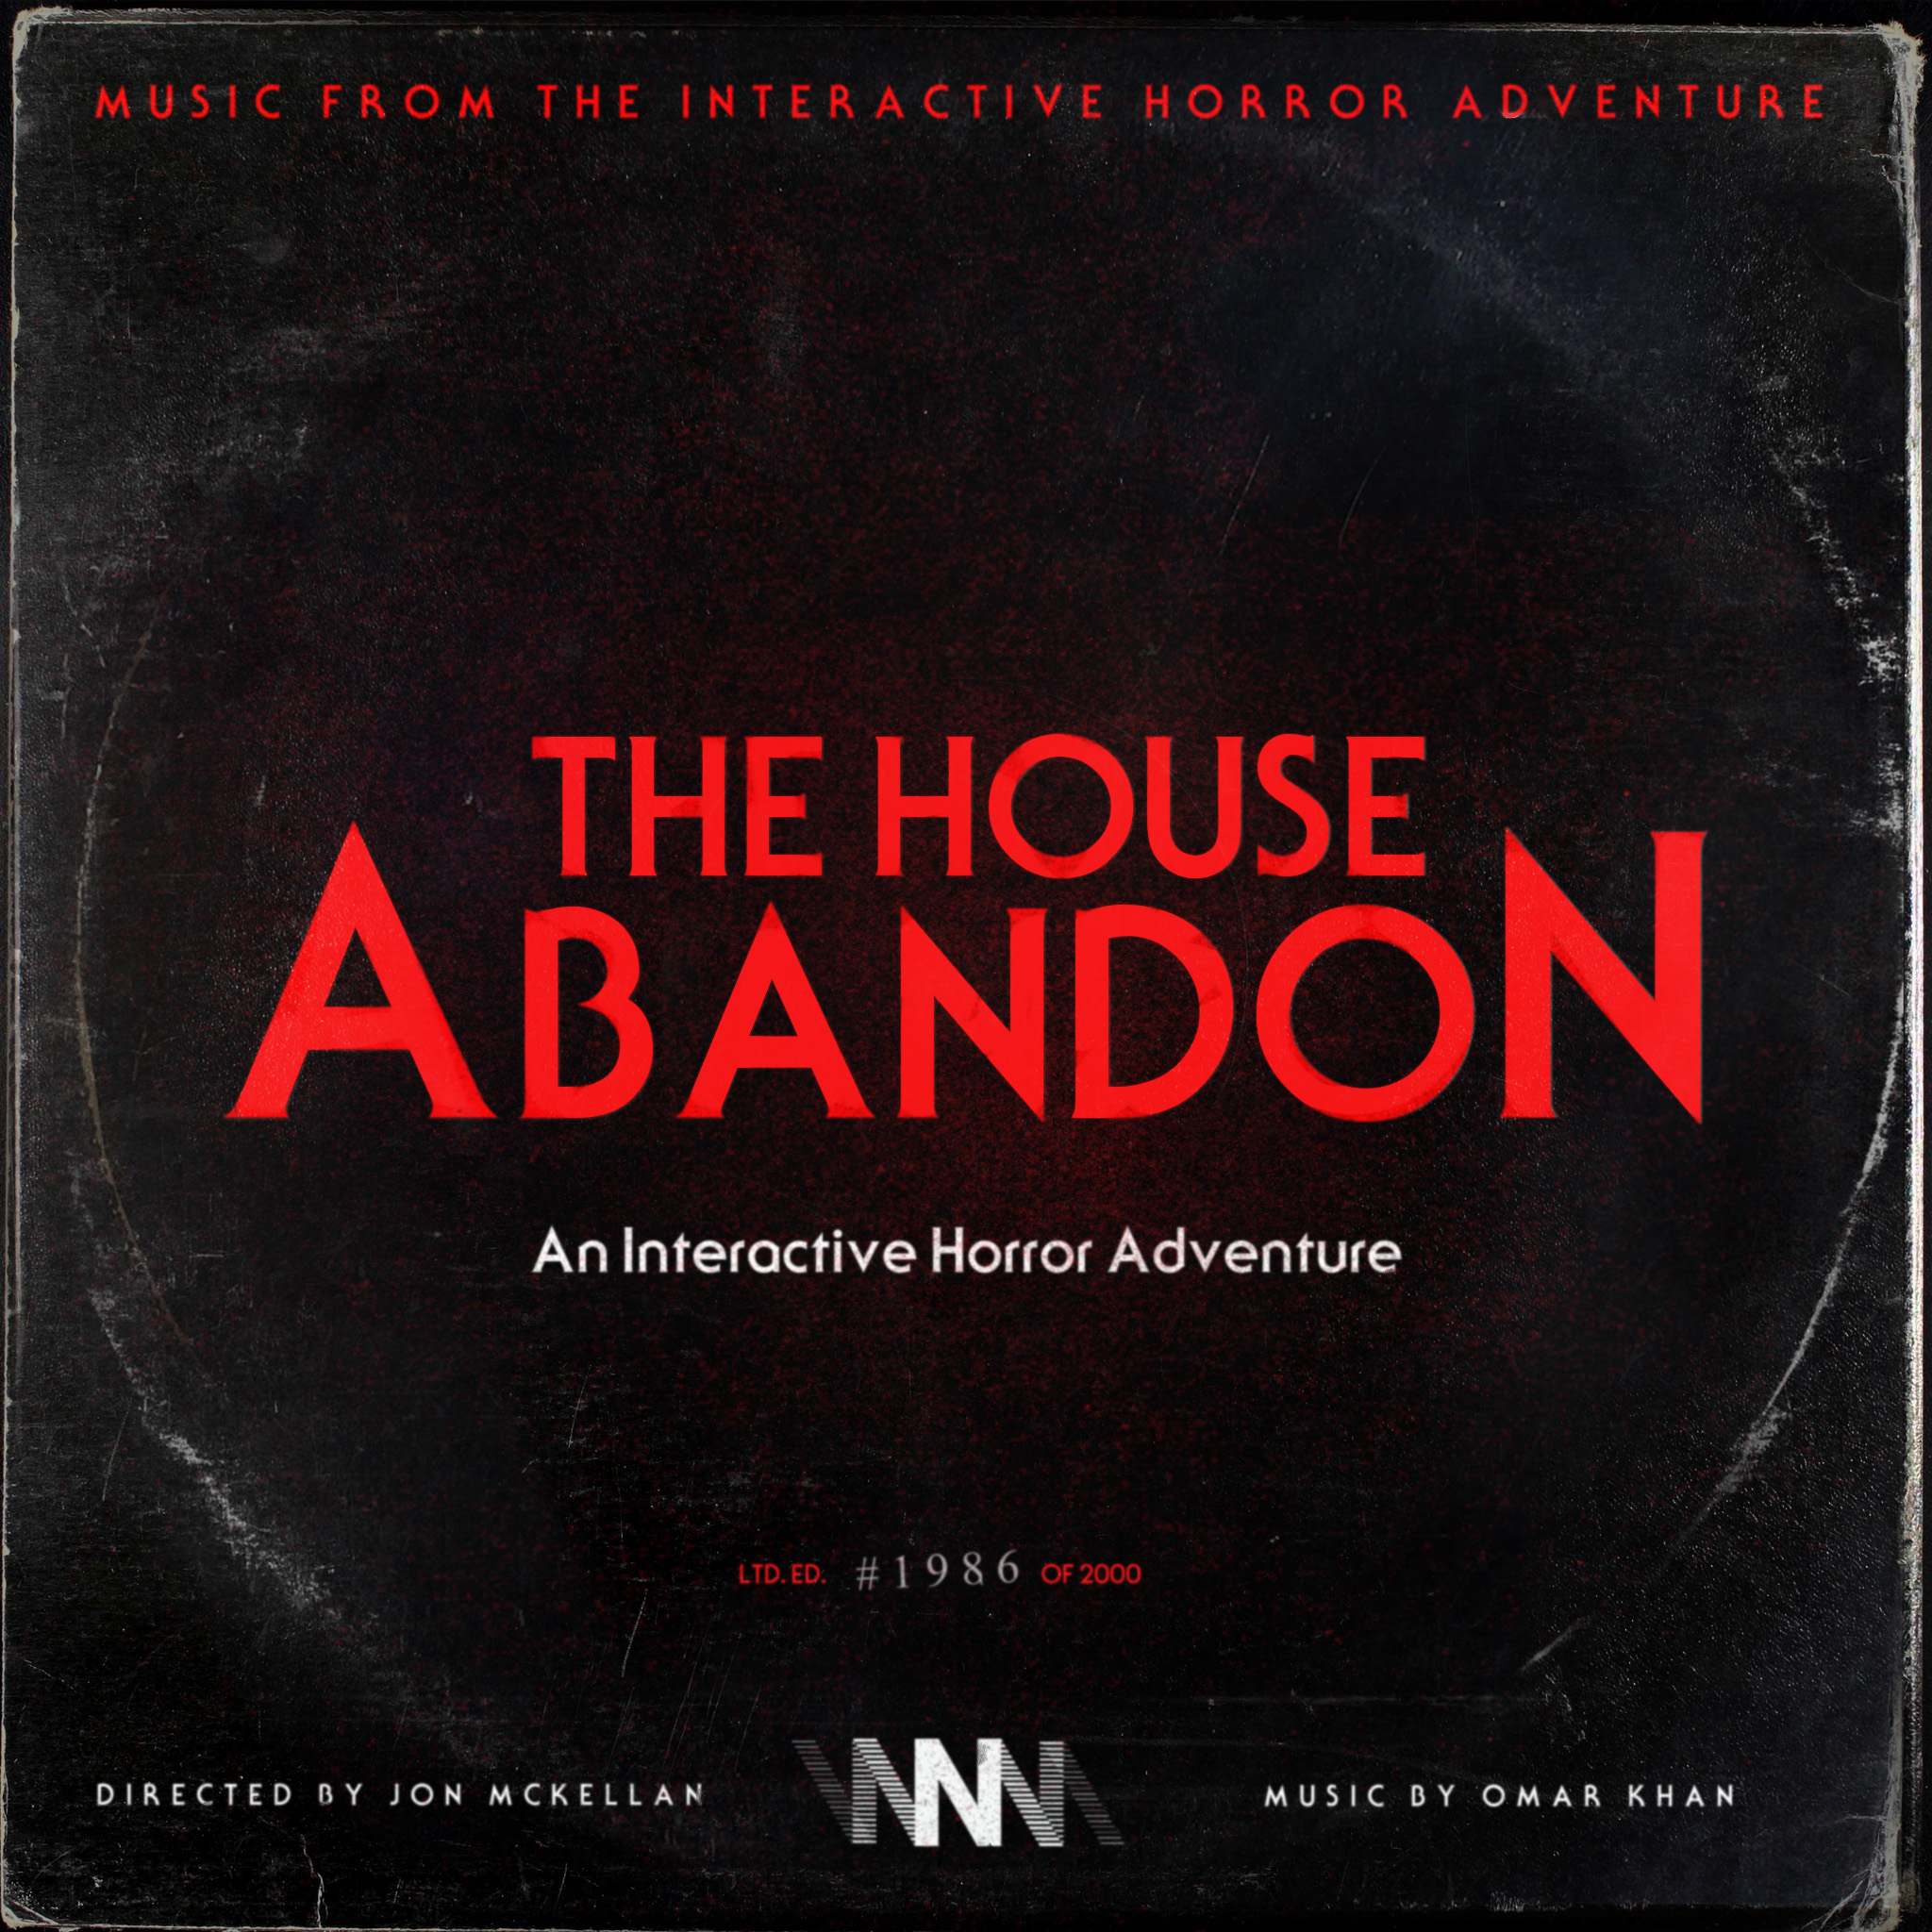 The House Abandon (2016) (PC) - A unique horror game, inside another horror game. 80's text-adventure by way of psychological horror and meta-representation. A short story, free, for PC and Mac.Created for Ludum Dare 36, this 72 hour game jam project suddenly became an overnight hit, with front page features on gaming sites within days of release.It's creepy, its different, it's only 20 minutes long, and it's free. Go try it, and let us know what you think.